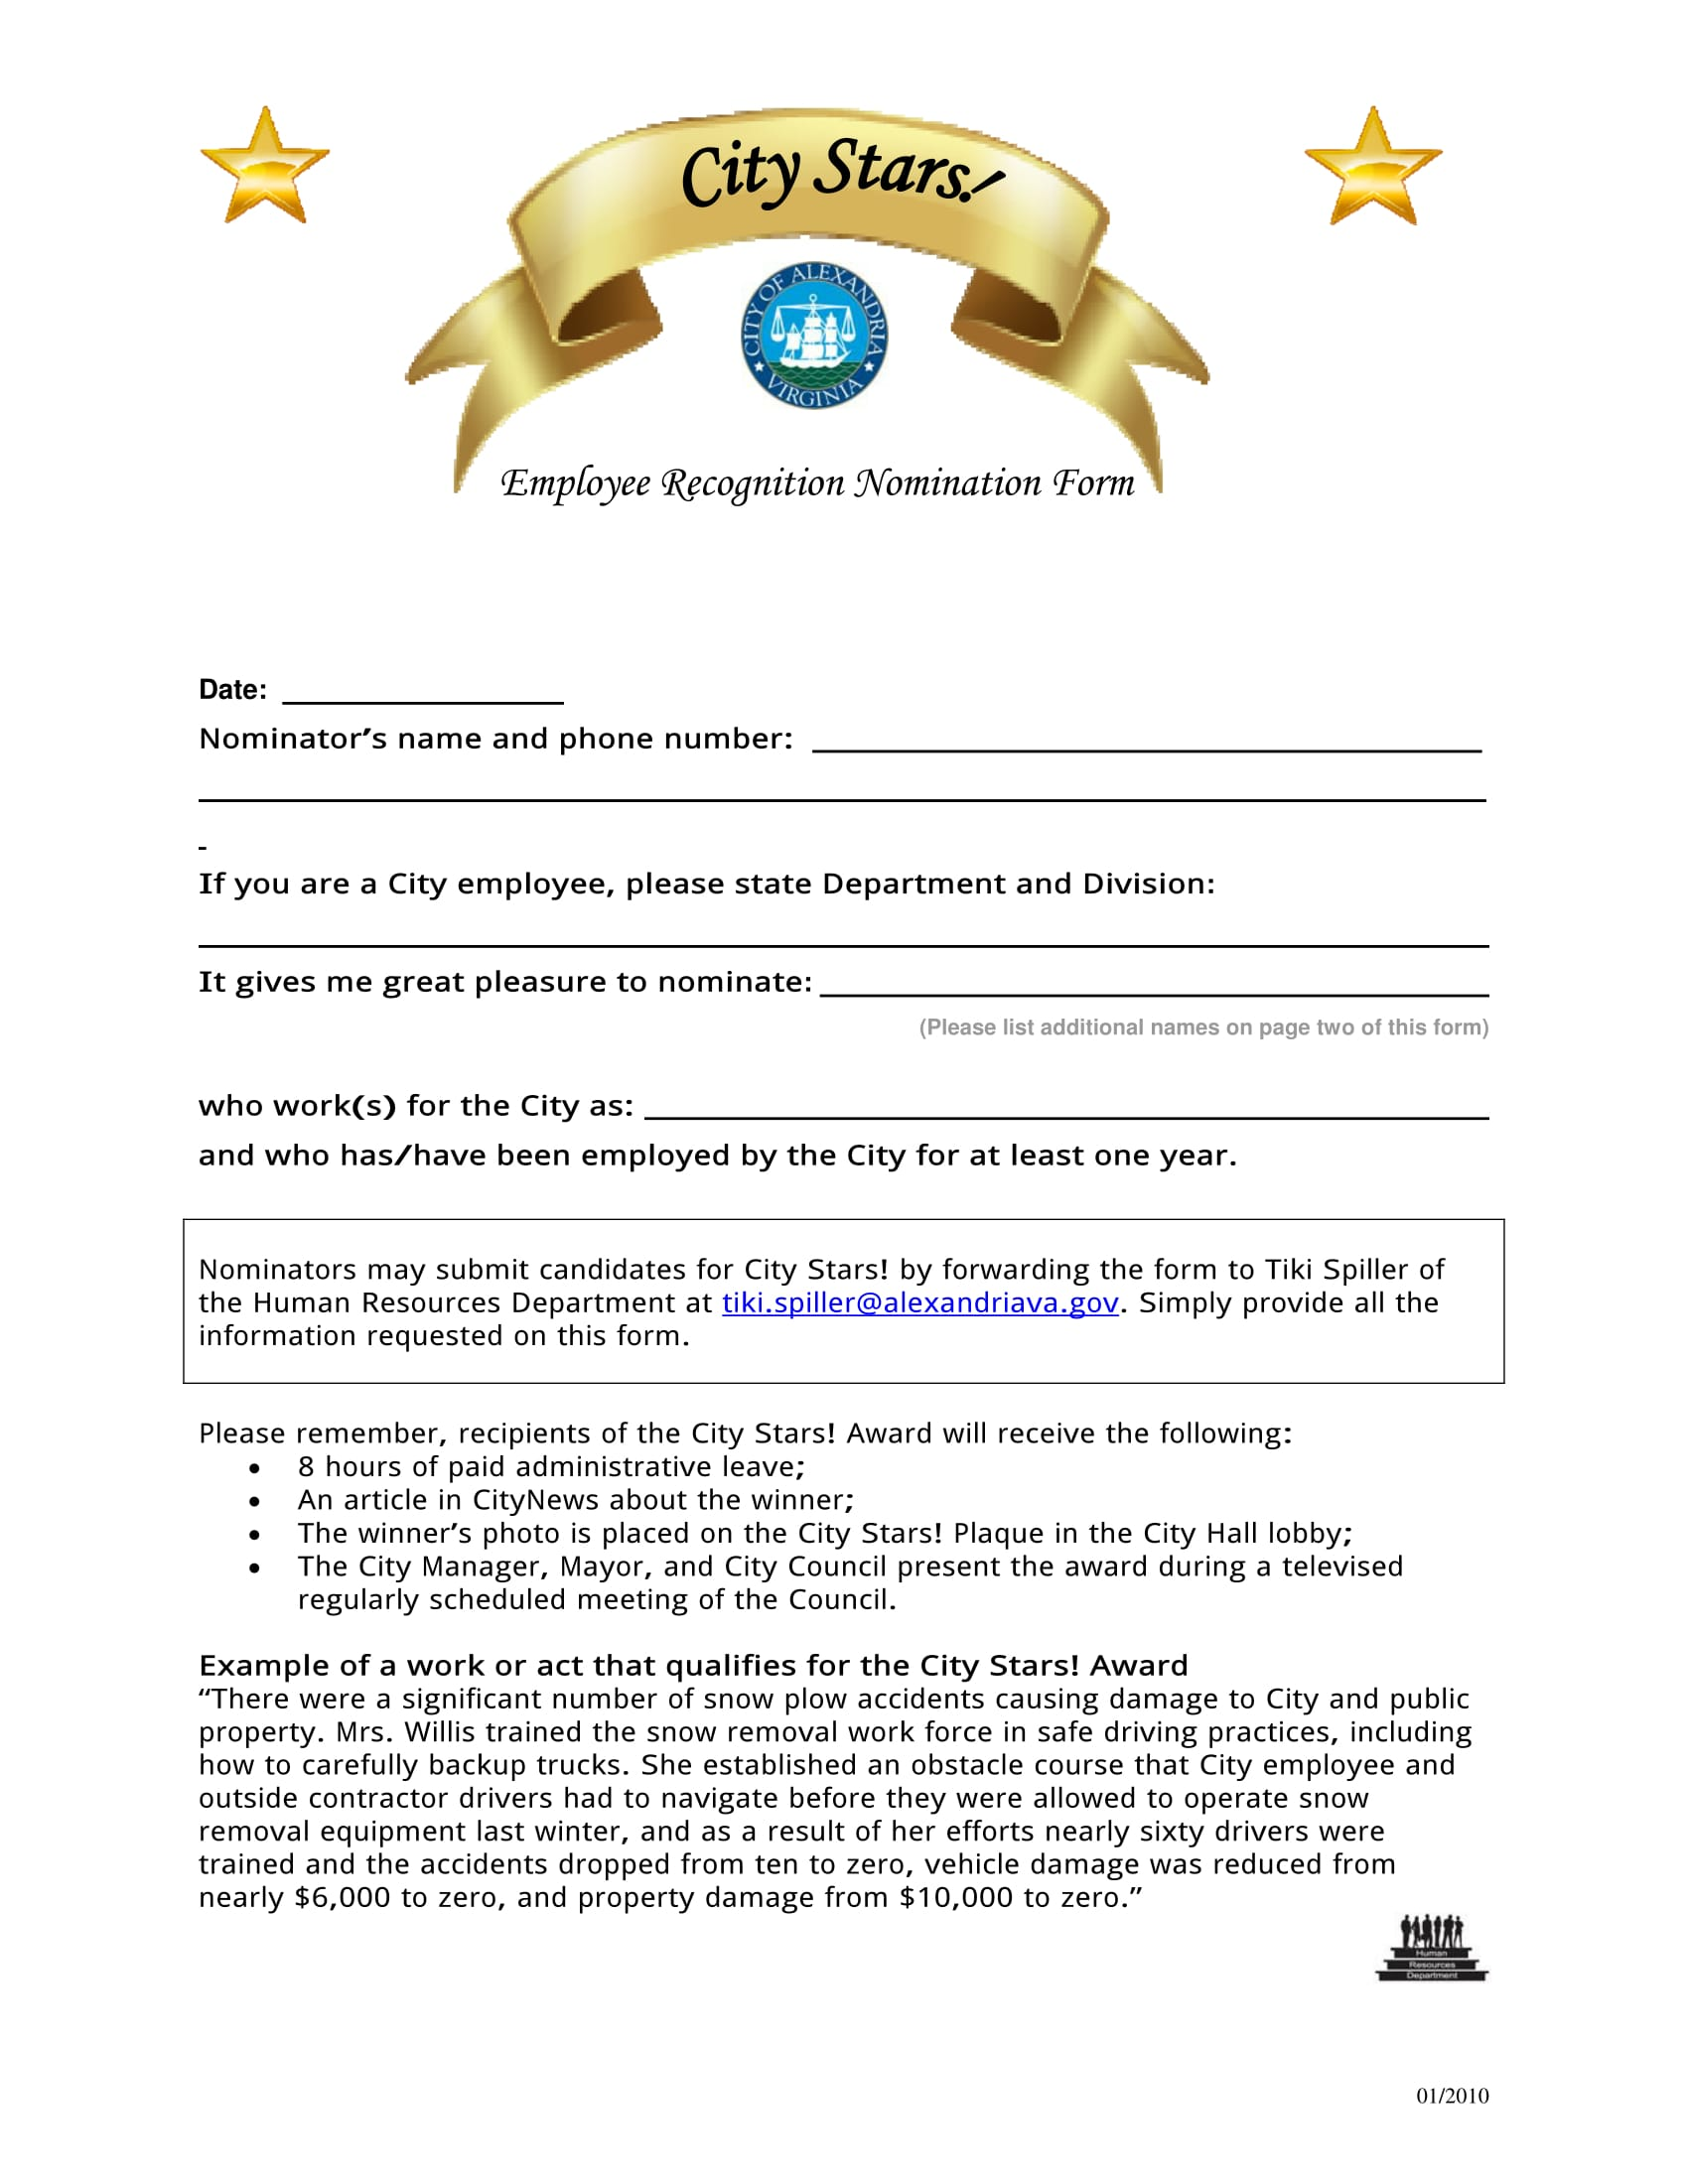 basic employee nomination form 1